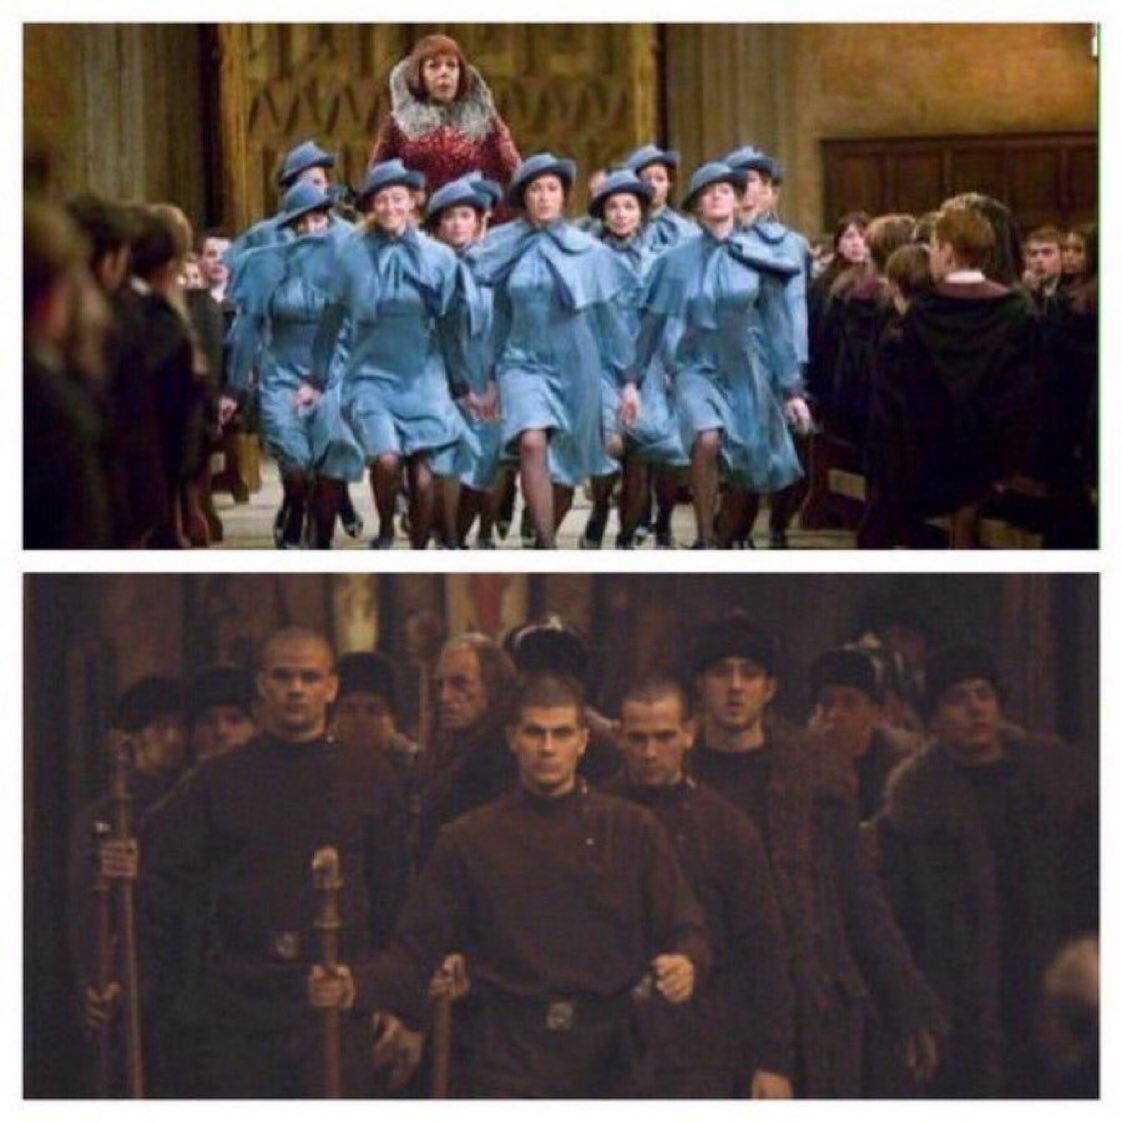 Harry Potter Universe On Twitter October 30 1994 The Delegations From The Beauxbatons Academy Of Magic And The Durmstrang Institute Arrive At Hogwarts Https T Co Axthtseg9j Harry potter and the goblet of fire (first appearance). twitter